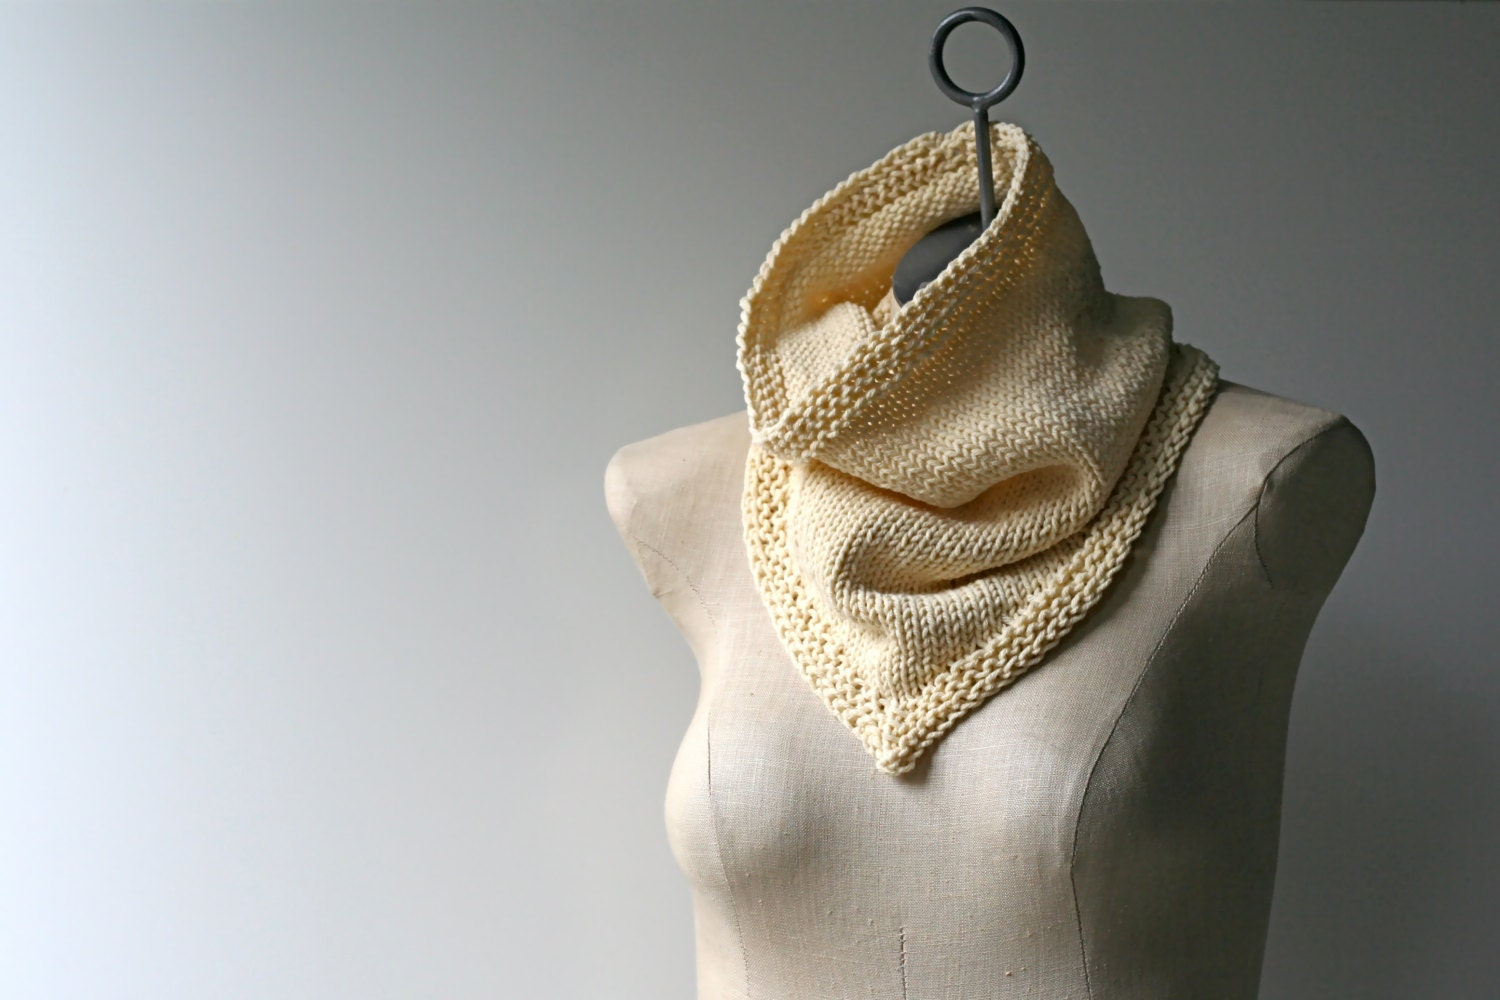 Made to Order: Hand Knitted Bandana Cowl Infinity Scarf in Cream Cotton Blend Yarn - AmyLaRoux